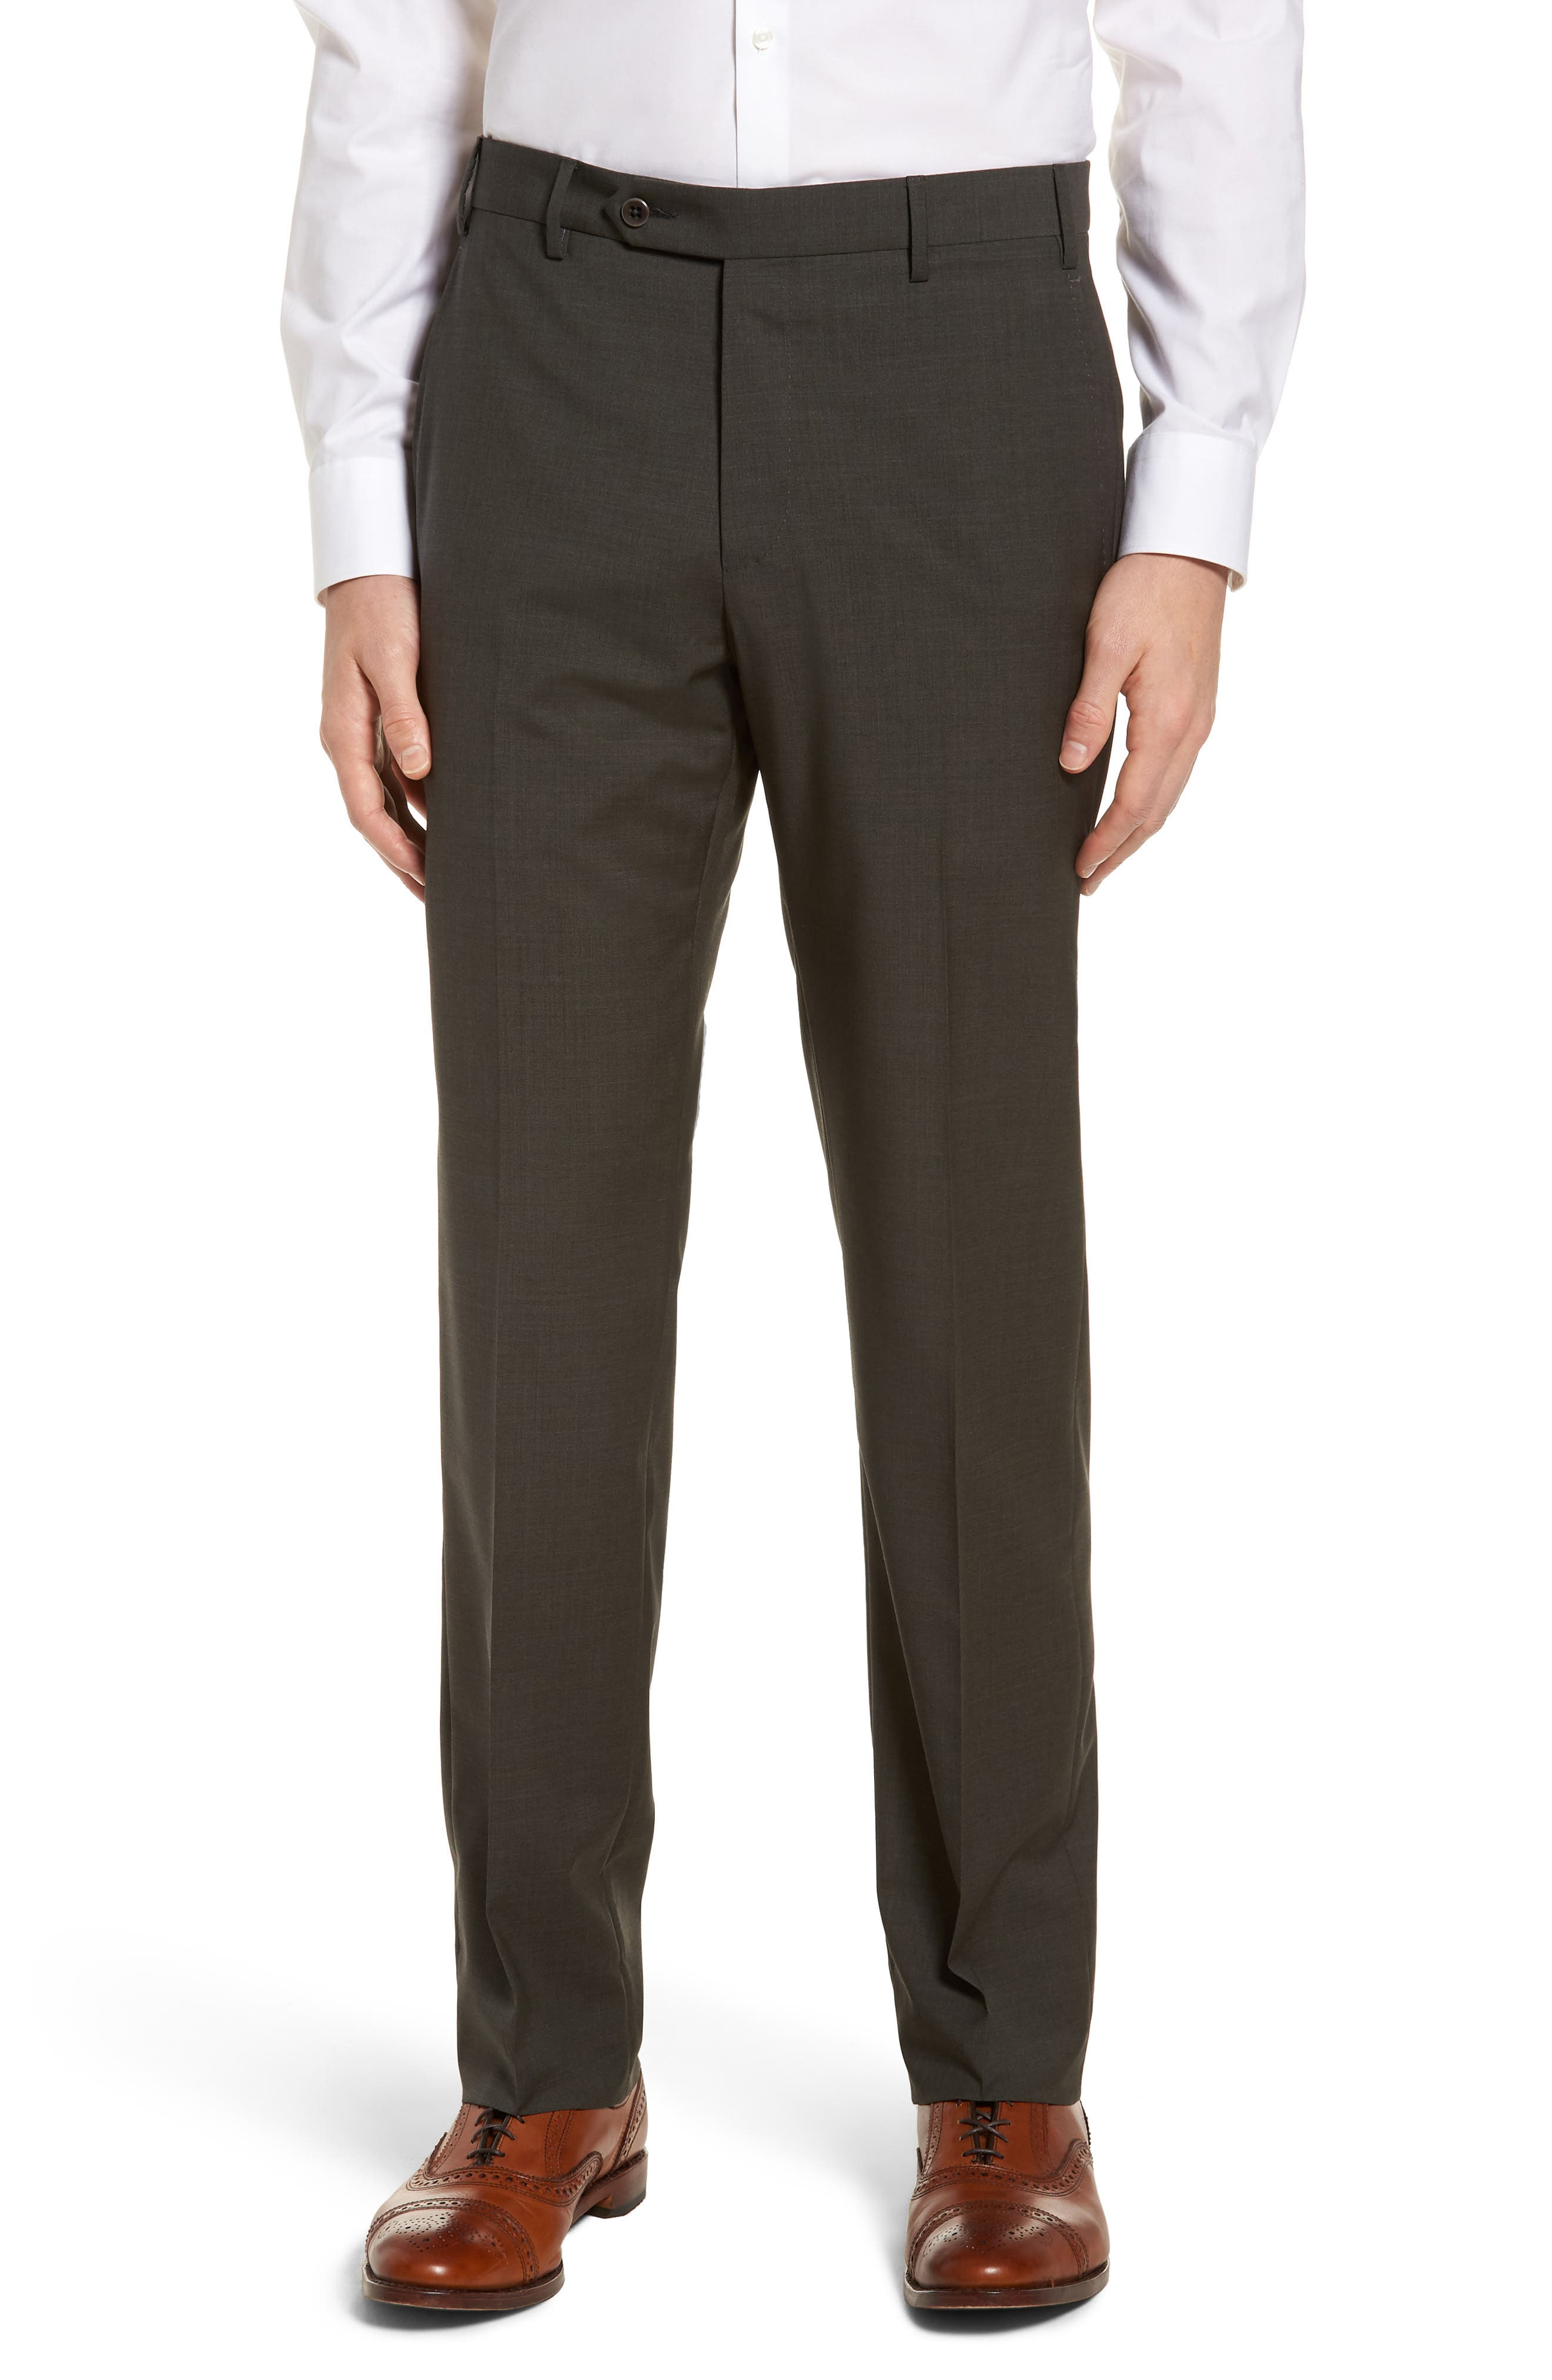 Devon Flat Front Solid Wool Trousers,                         Main,                         color, Olive